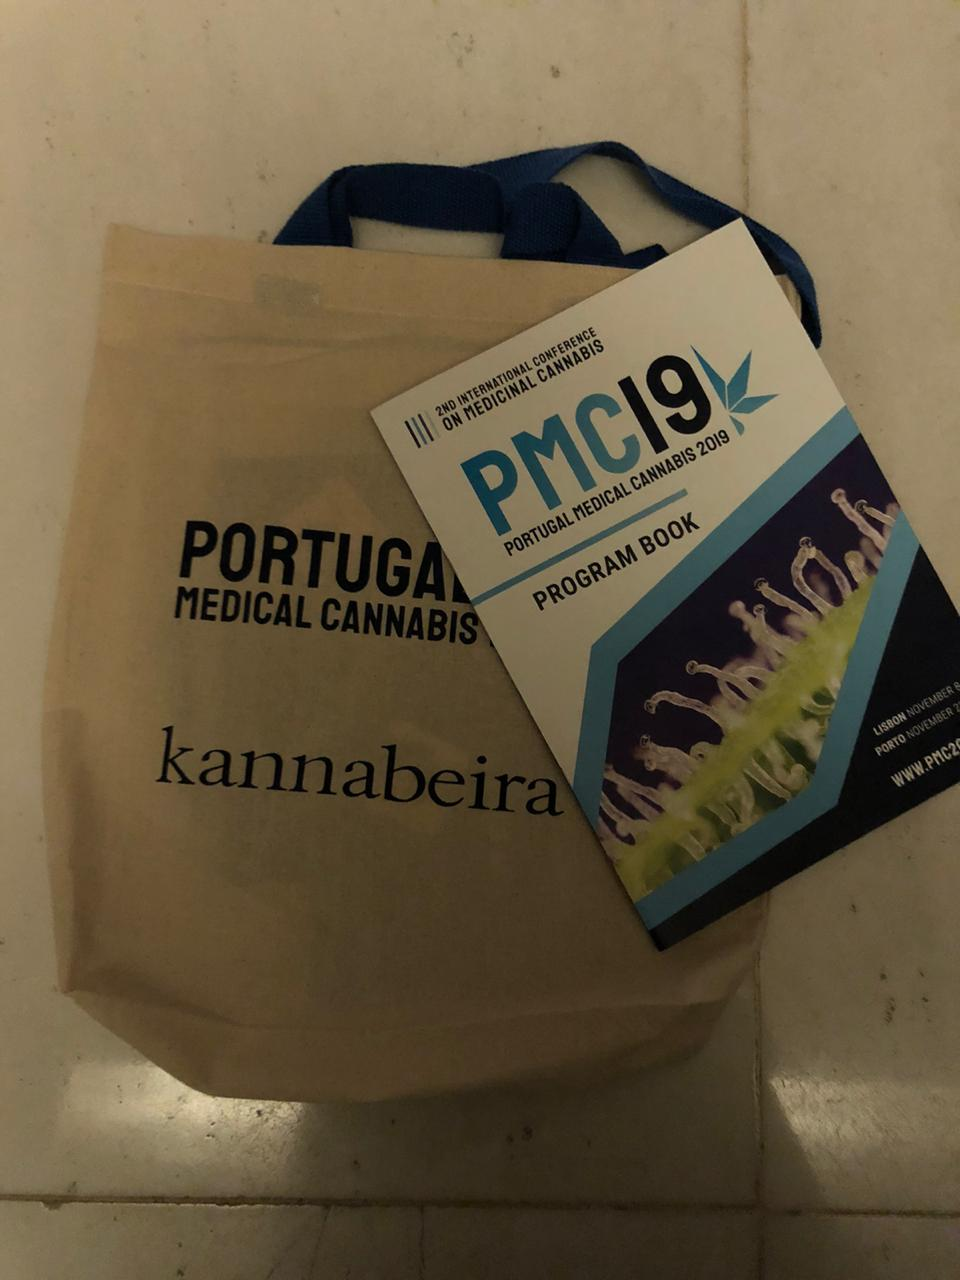 Picture of swag bag at Portugal Medical Cannabis 19 - Kannabeira